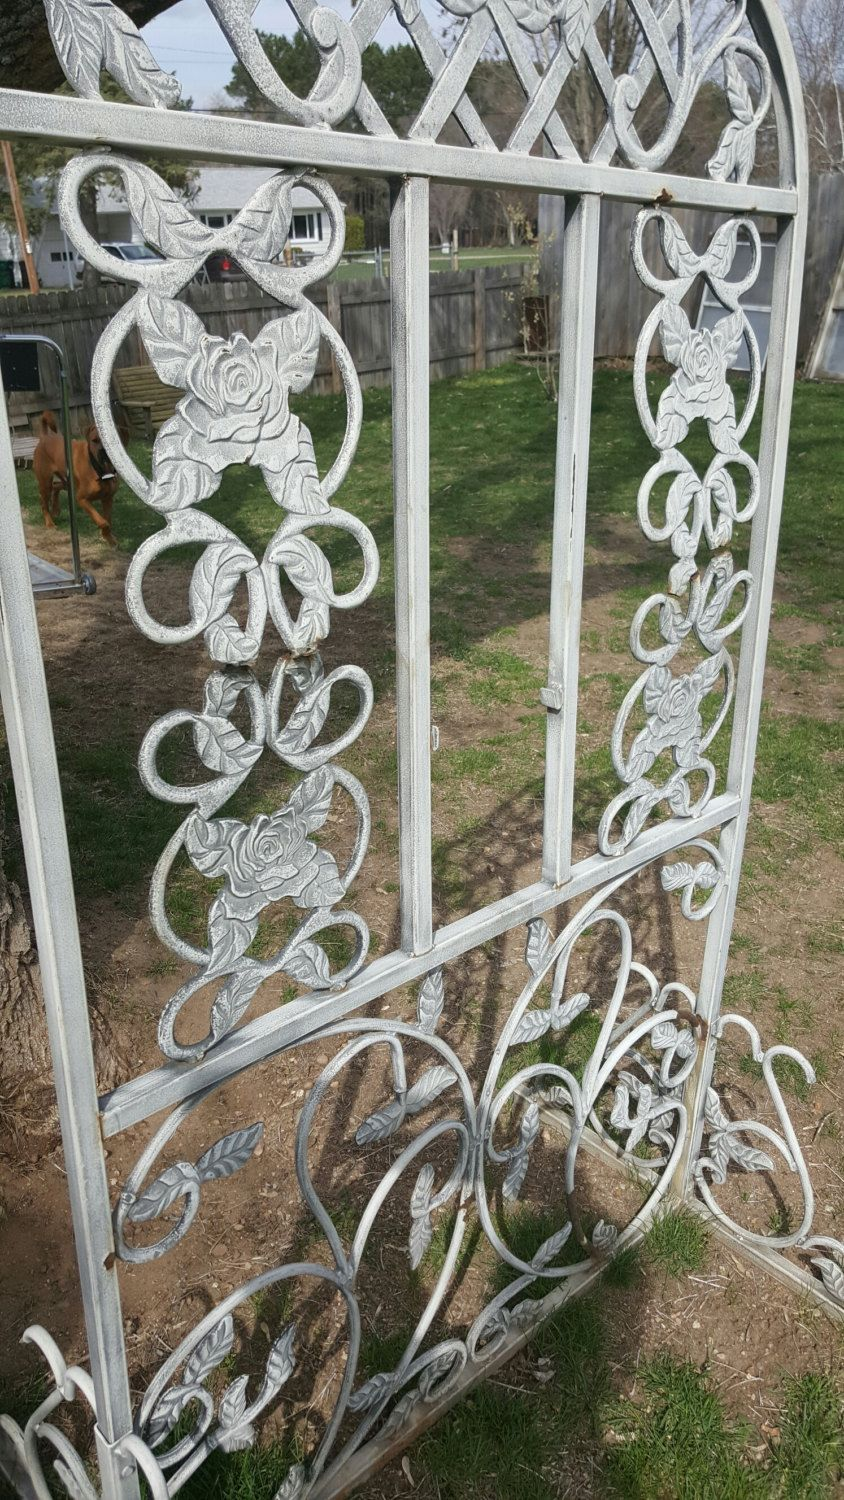 Vintage Garden Trellis Cast Iron Decor Flower Antique Wrought Gate Outdoor Metal Old Rustic By Antfoundantiques On